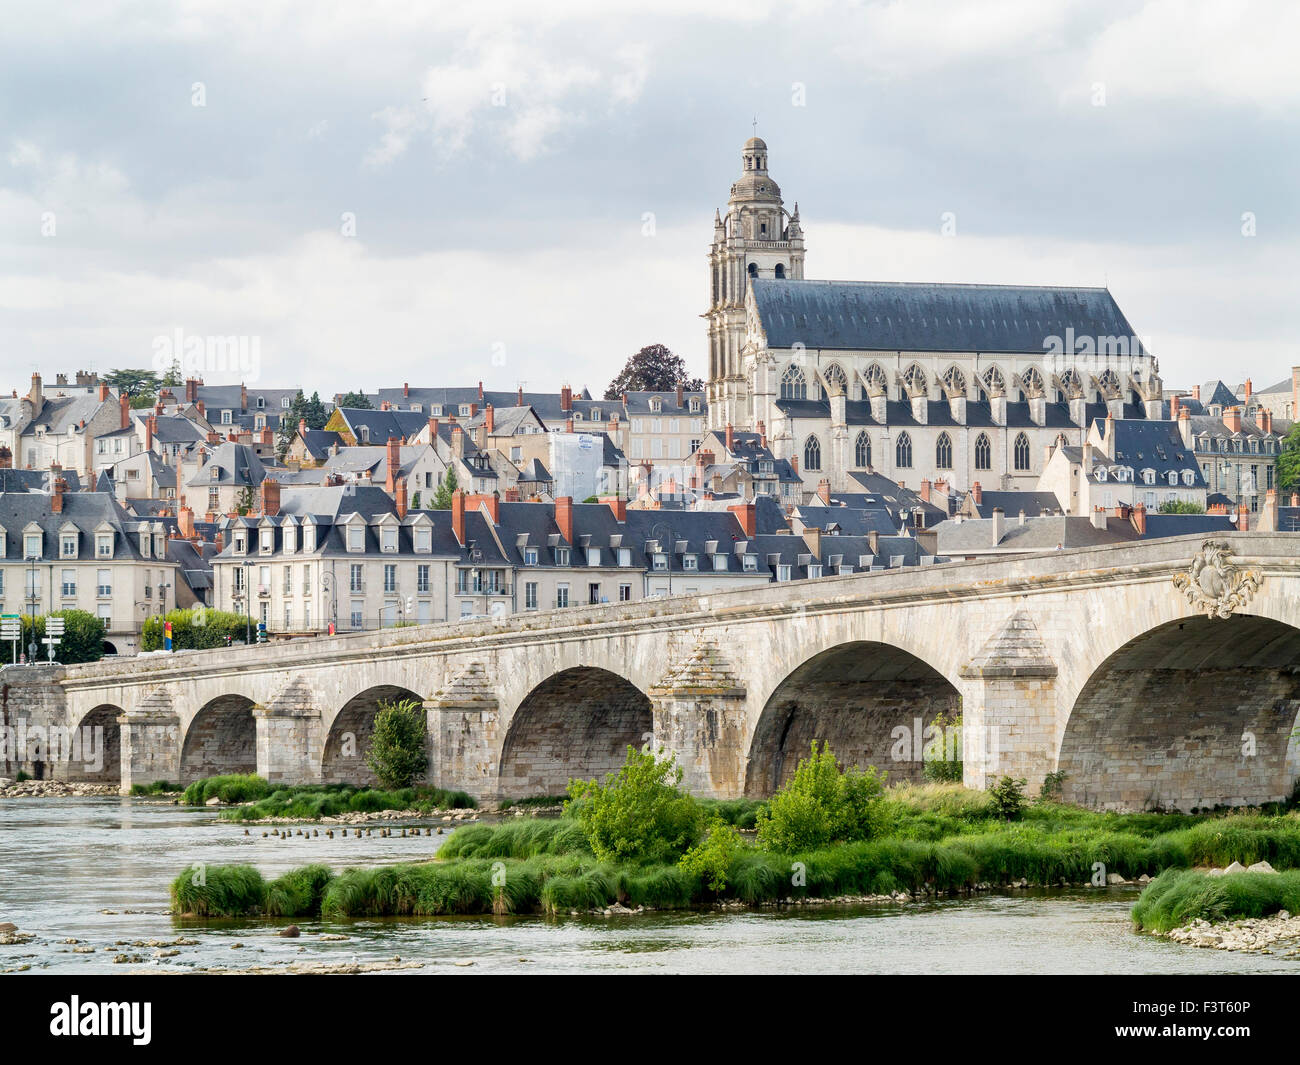 The architecture of the town centre of  the Loire Valley town of Blois which is situated on the River Loire in France. - Stock Image